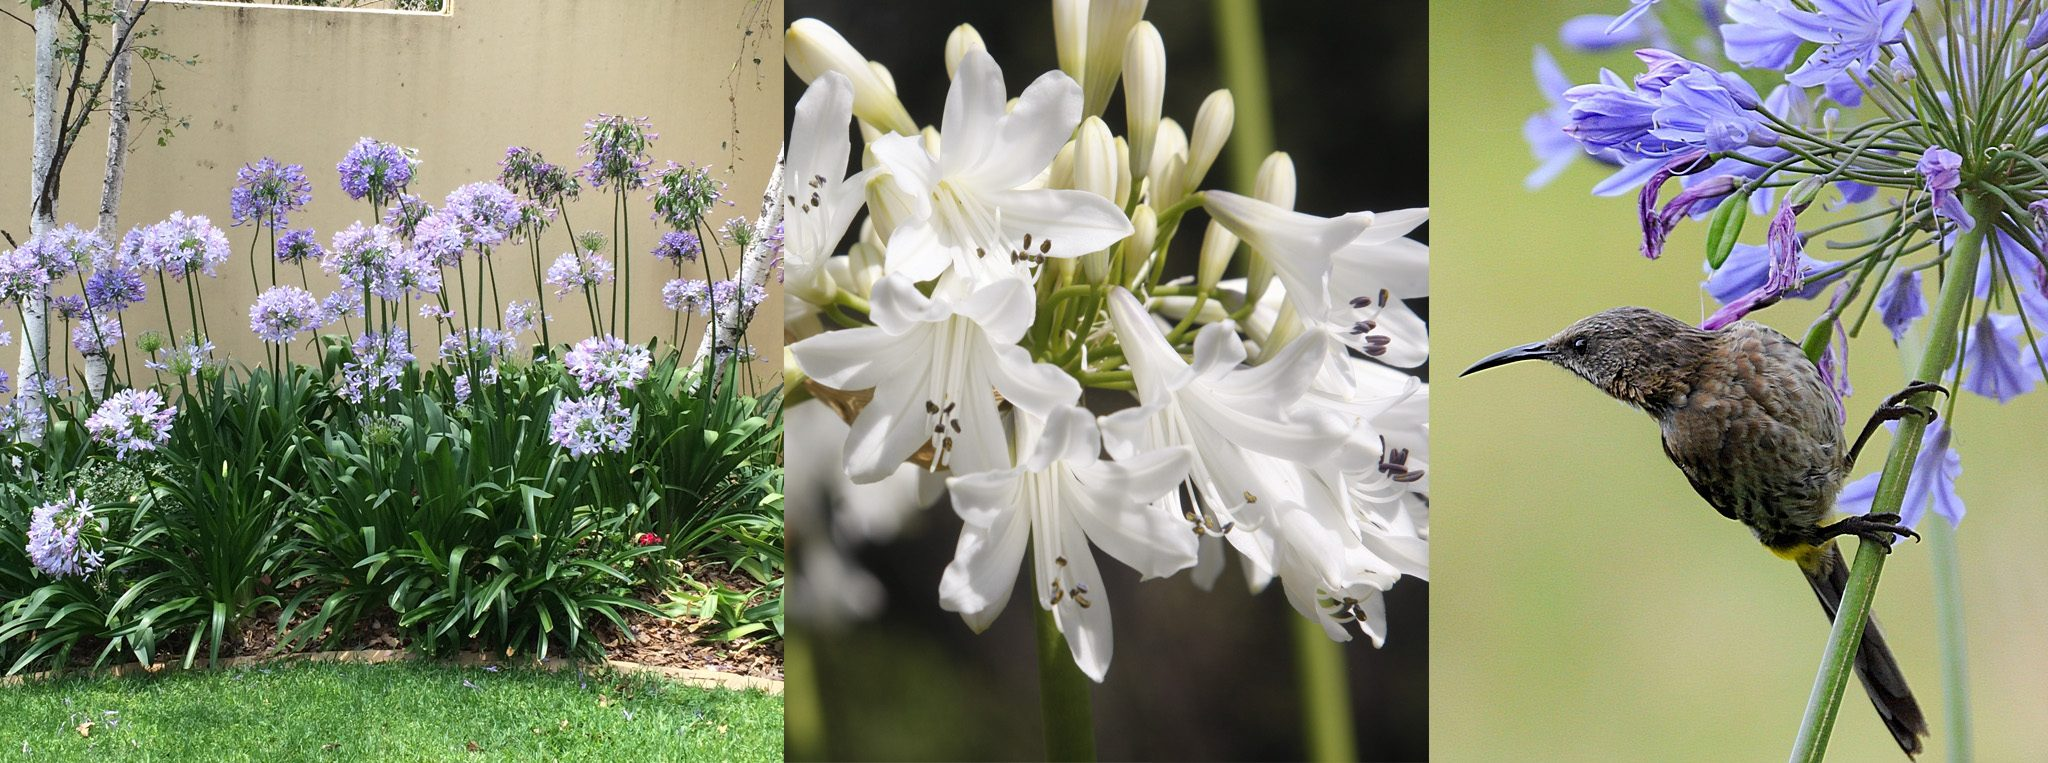 Top 14 water-wise plants for your garden - DIY - Grounded Landscaping